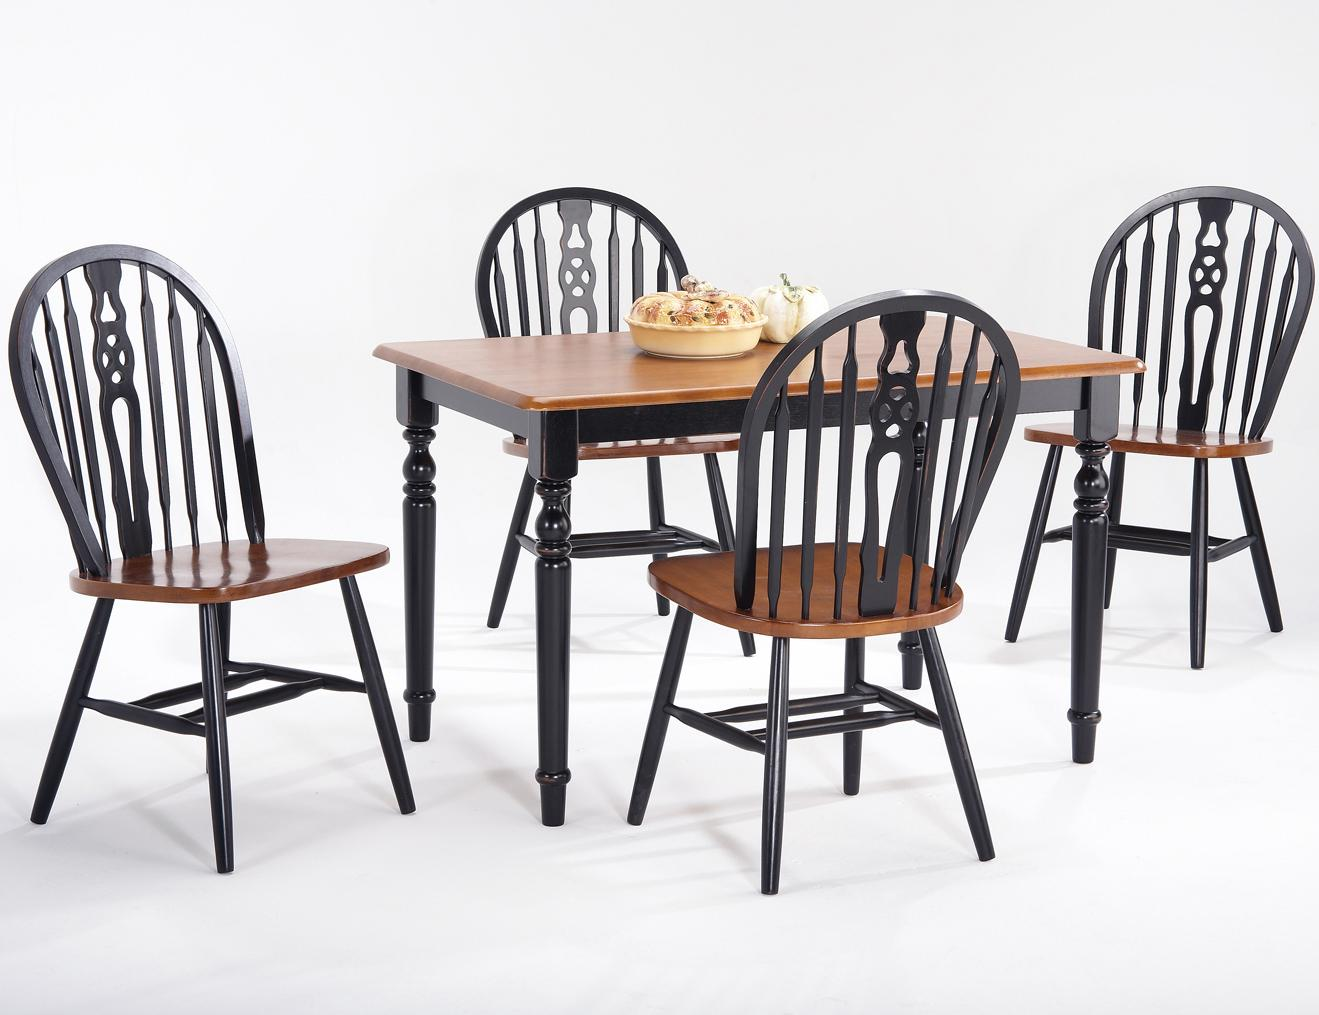 Amesbury Chair Farmhouse And Traditional Windsor Drop Leaf Pedestal Round  Table | SuperStore | Kitchen Table